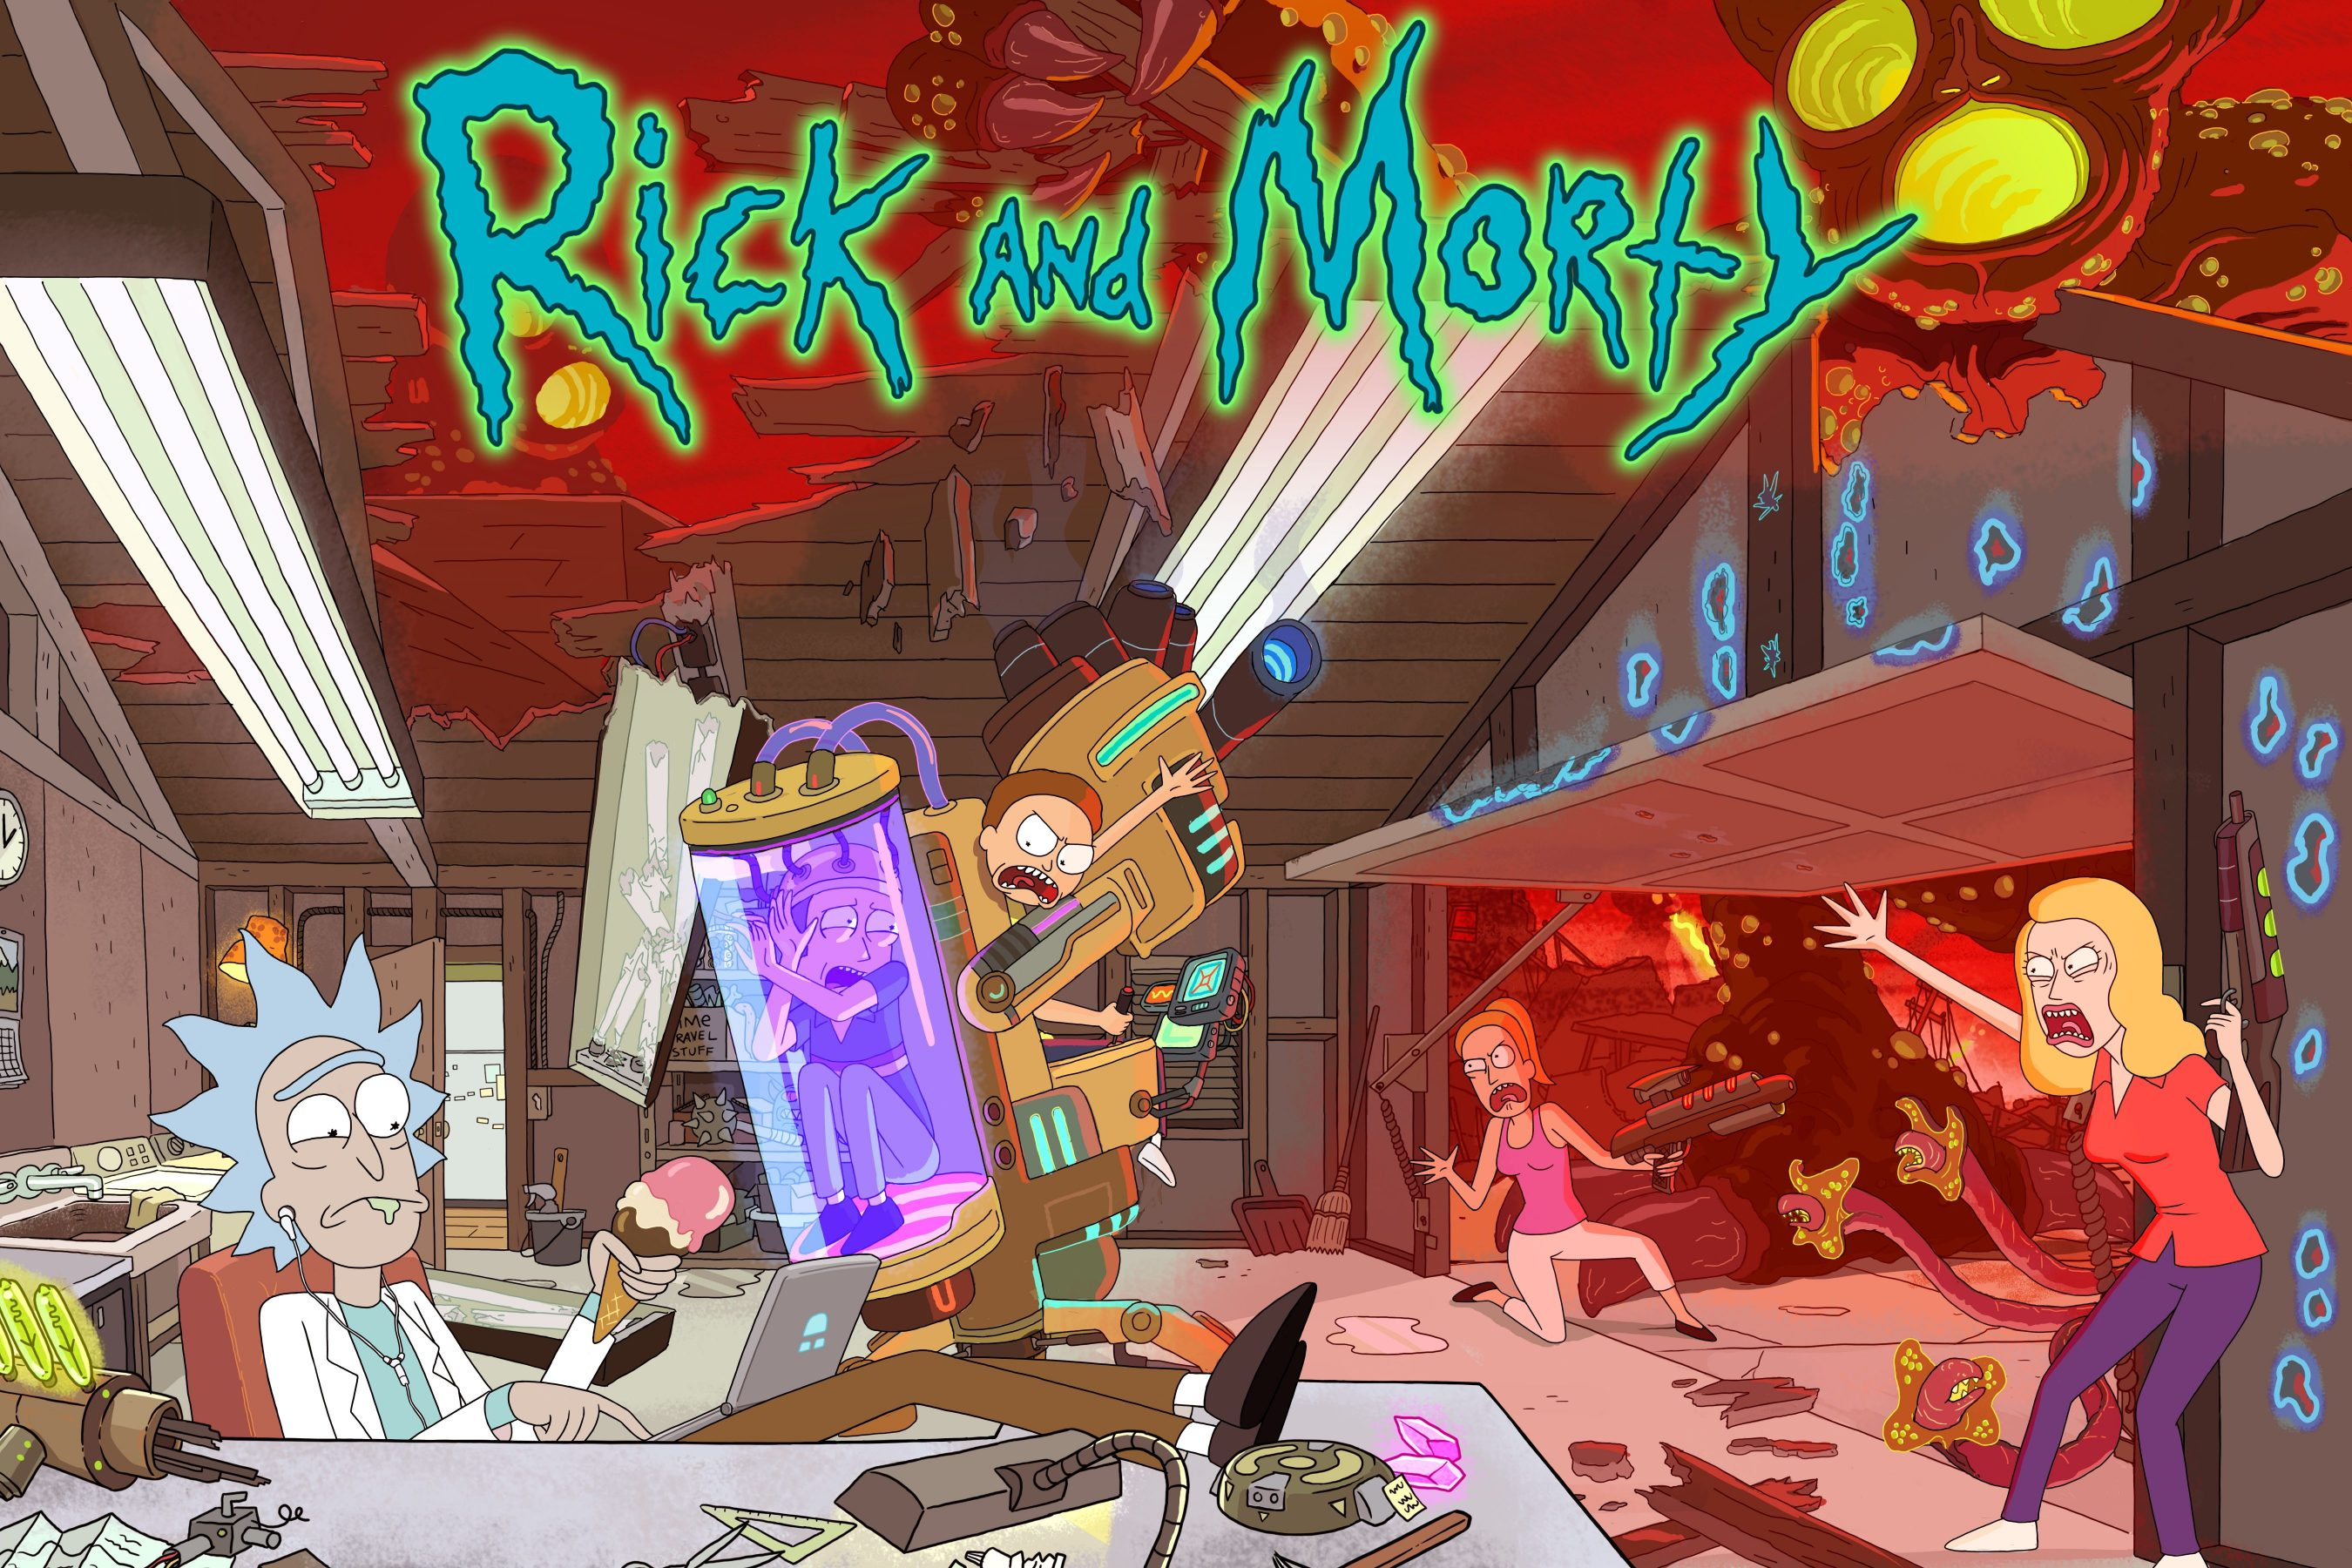 Bunte Farben, finstere Themen: Die Cartoon-Serie Rick and Morty